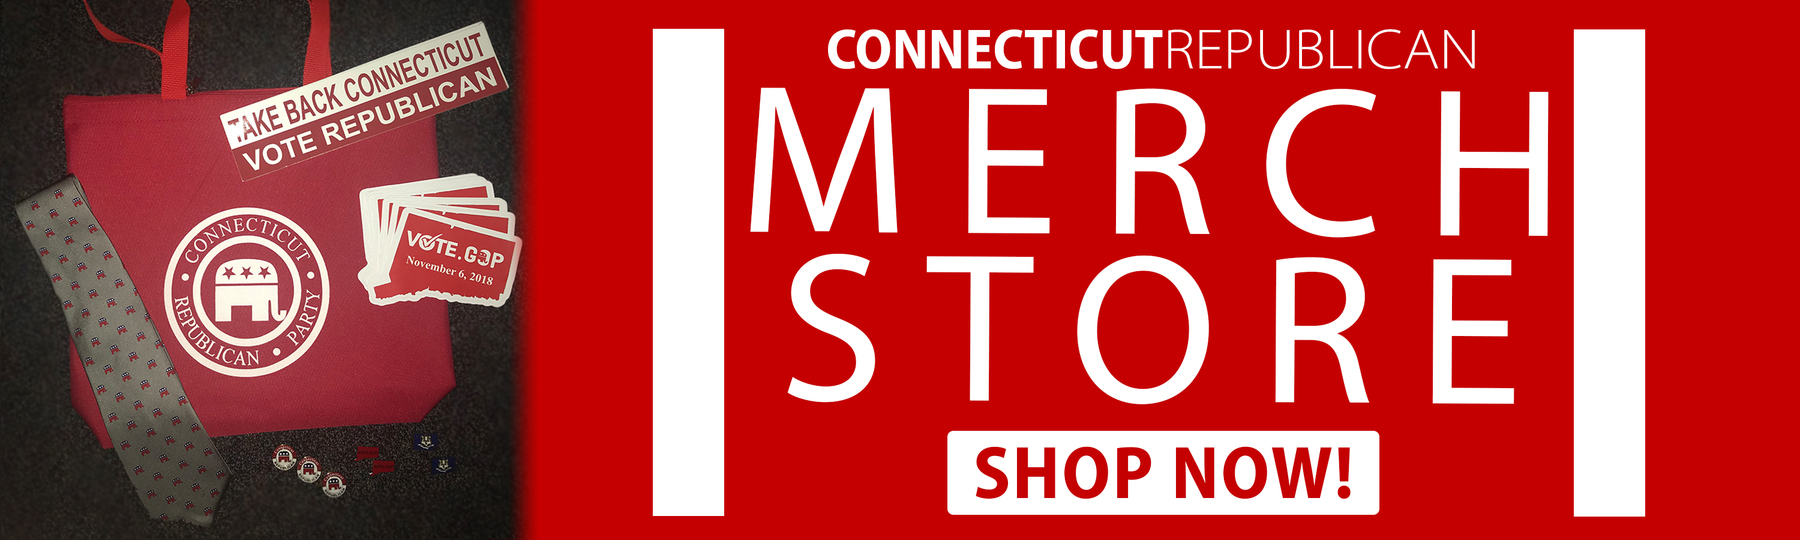 Connecticut Republicans: Web Store